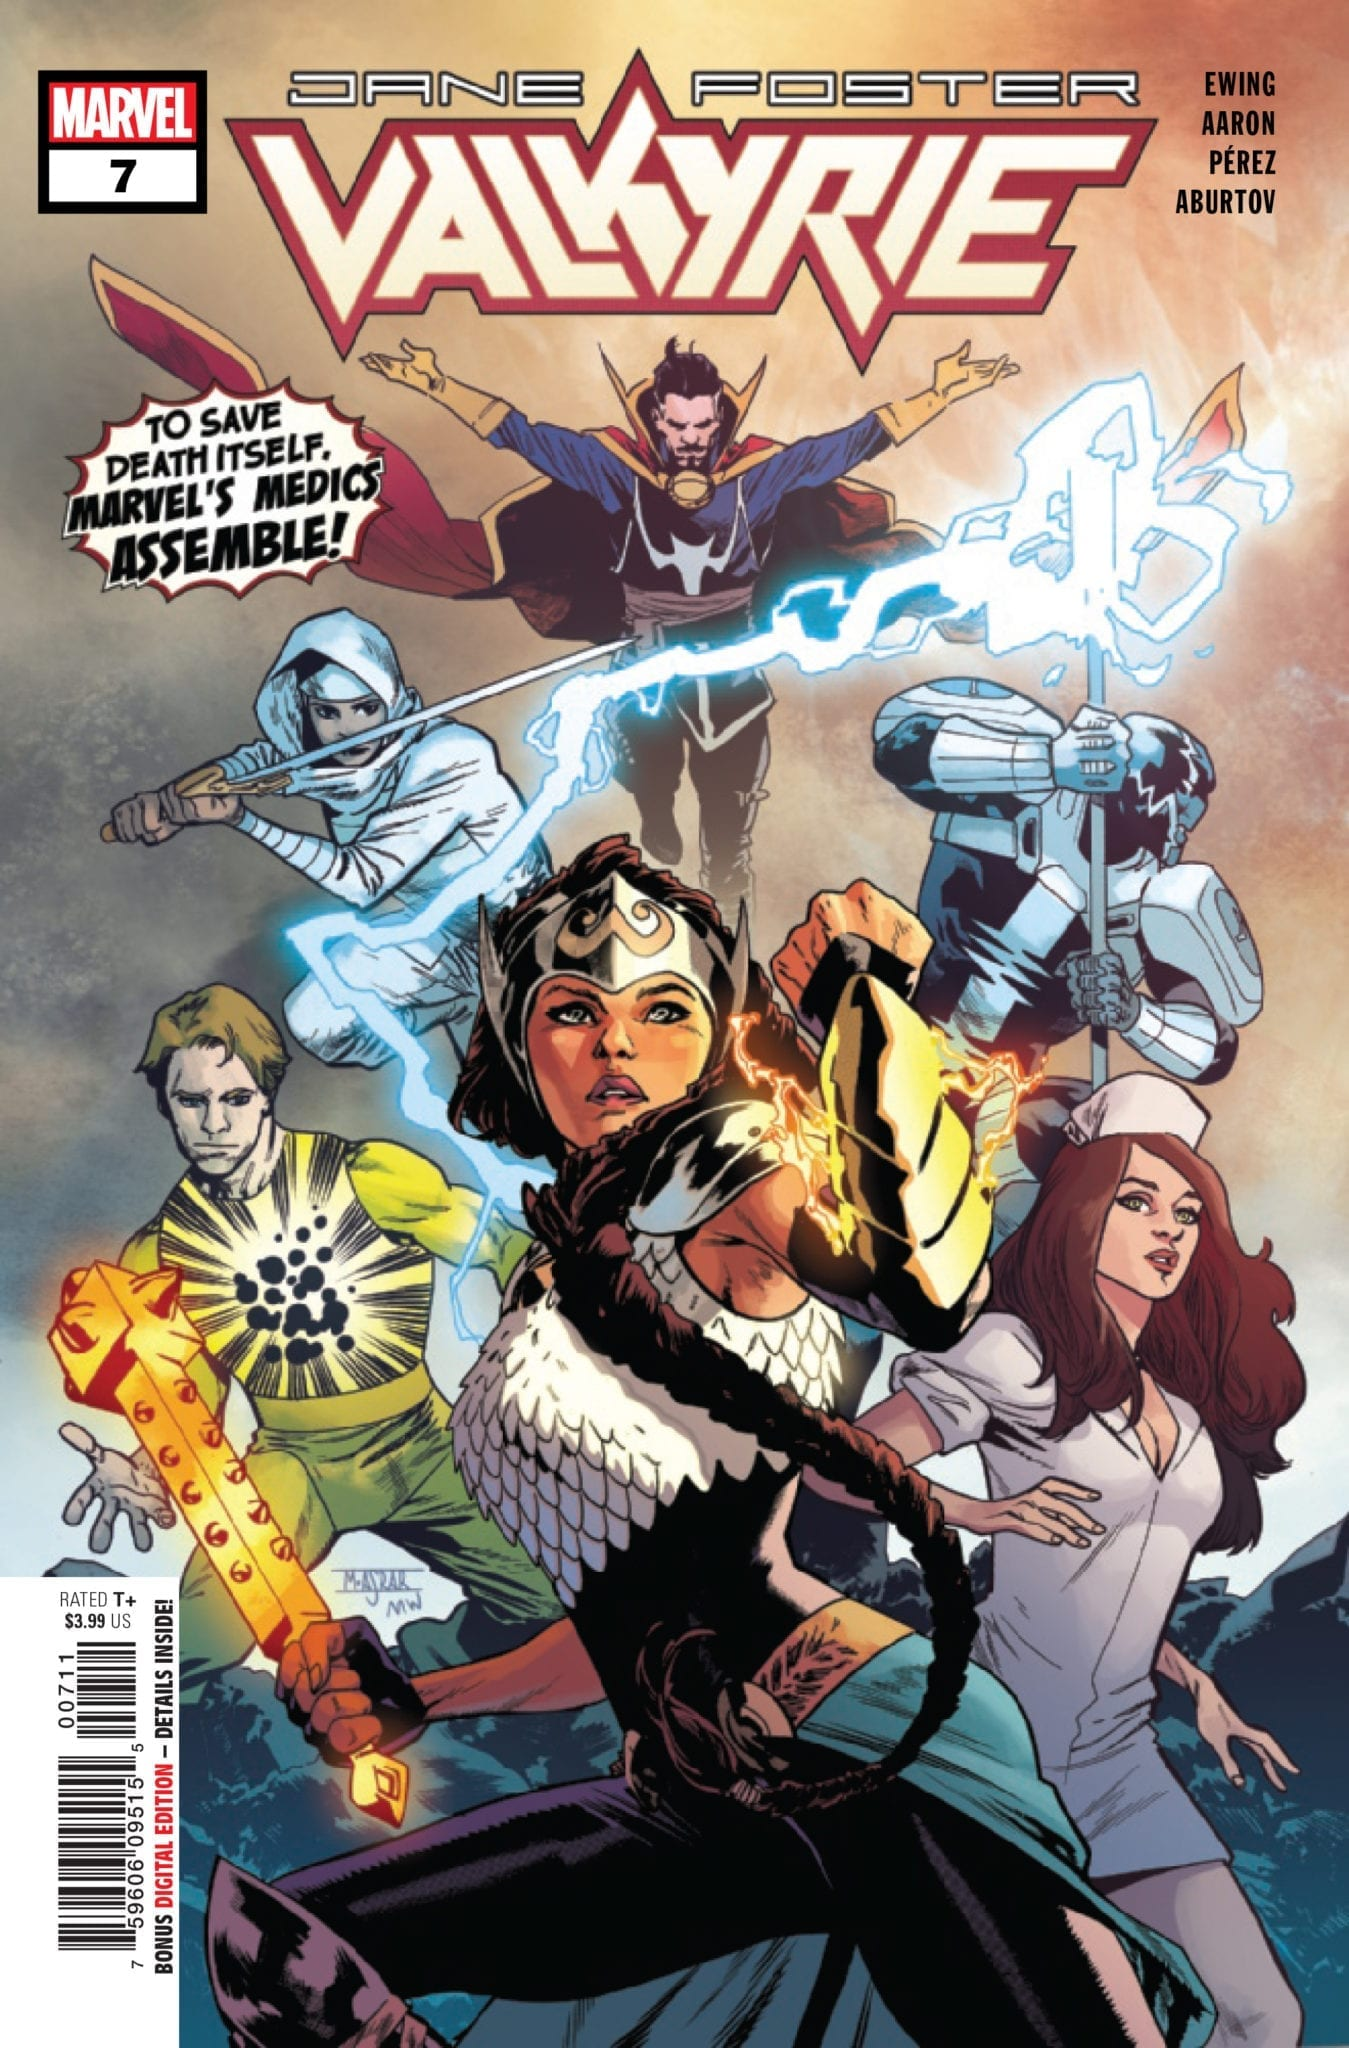 marvel comics exclusive preview valkyrie jane foster #7